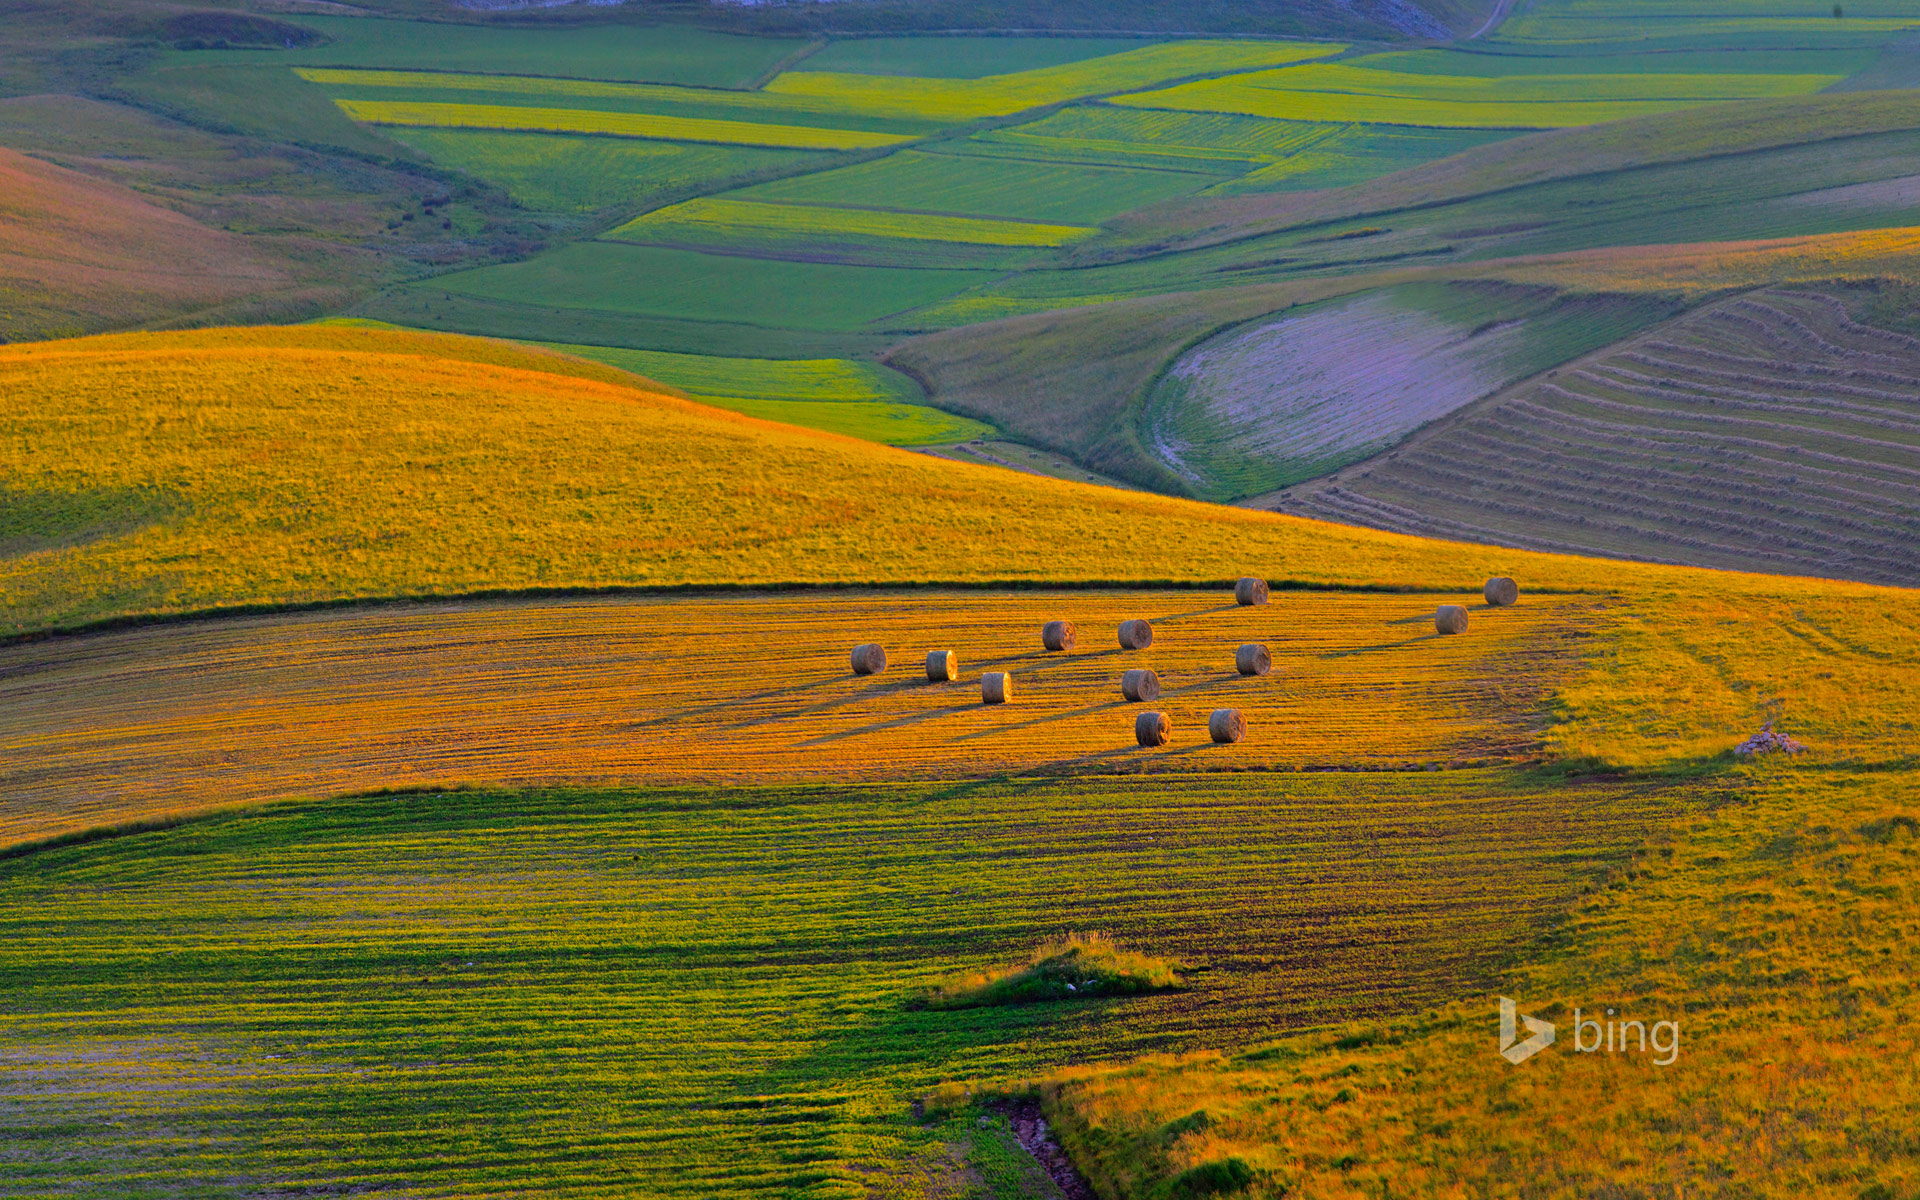 Sunset on Pian Grande plateau, Perugia district, Italy